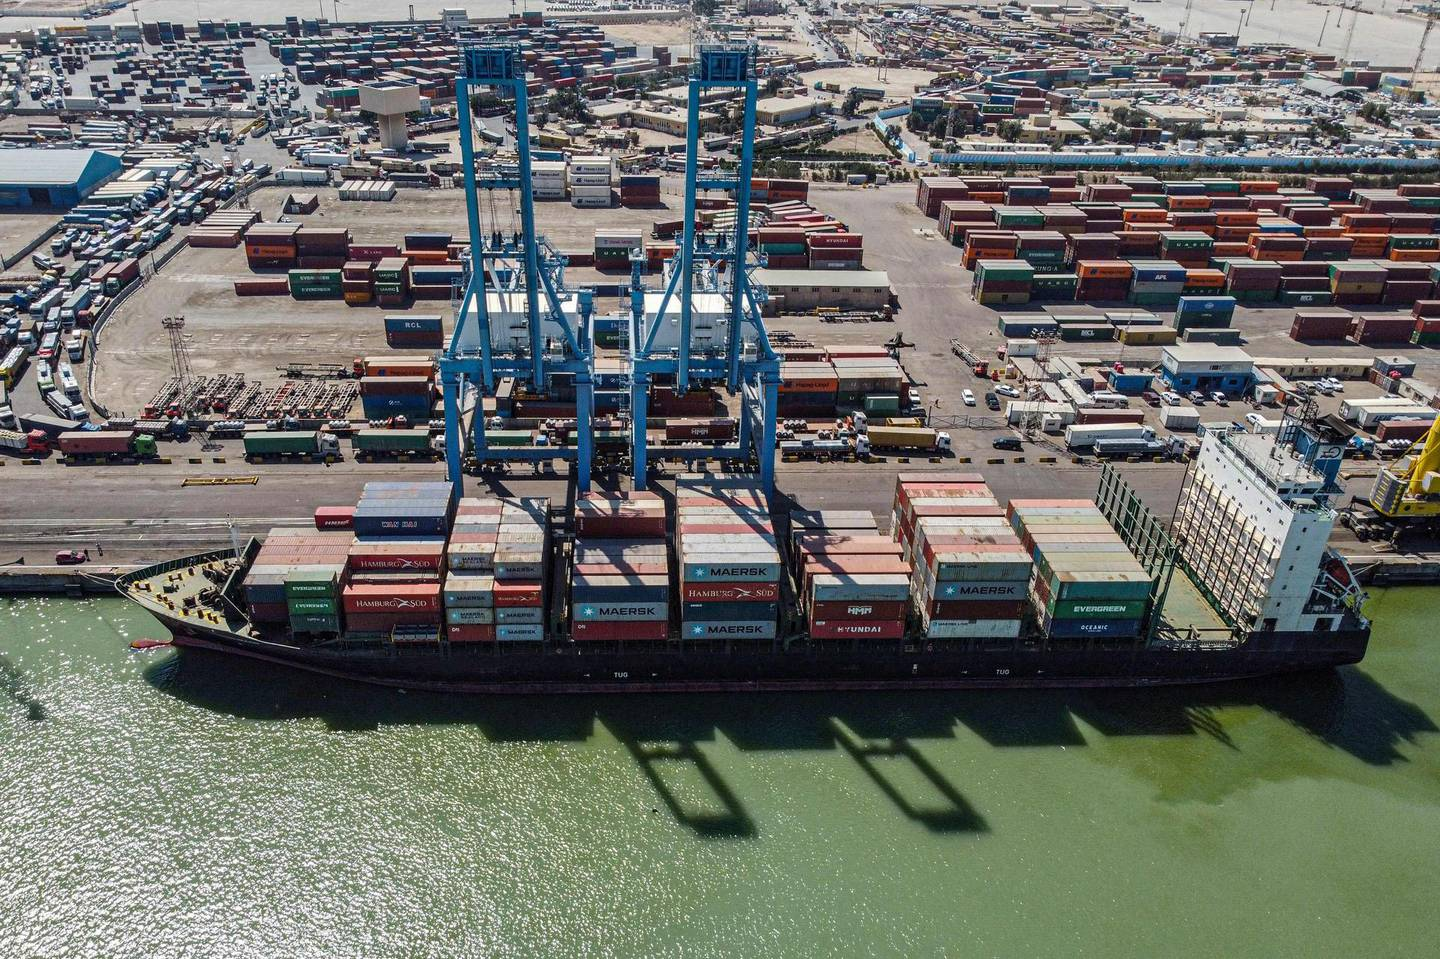 This picture taken on March 14, 2021 shows an aerial view of containers being unloaded off a cargo ship moored at the port of Umm Qasr, south of Iraq's southern city of Basra. Iraq is ranked the 21st most corrupt country by Transparency International. In January, the advocacy group said public corruption had deprived Iraqis of basic rights and services, including water, health care, electricity and jobs. It said systemic graft was eating away at Iraqis' hopes for the future, pushing growing numbers to try to emigrate. In 2019, hundreds of thousands of protesters flooded Iraqi cities, first railing against poor public services, then explicitly accusing politicians of plundering resources meant for the people. / AFP / Hussein FALEH